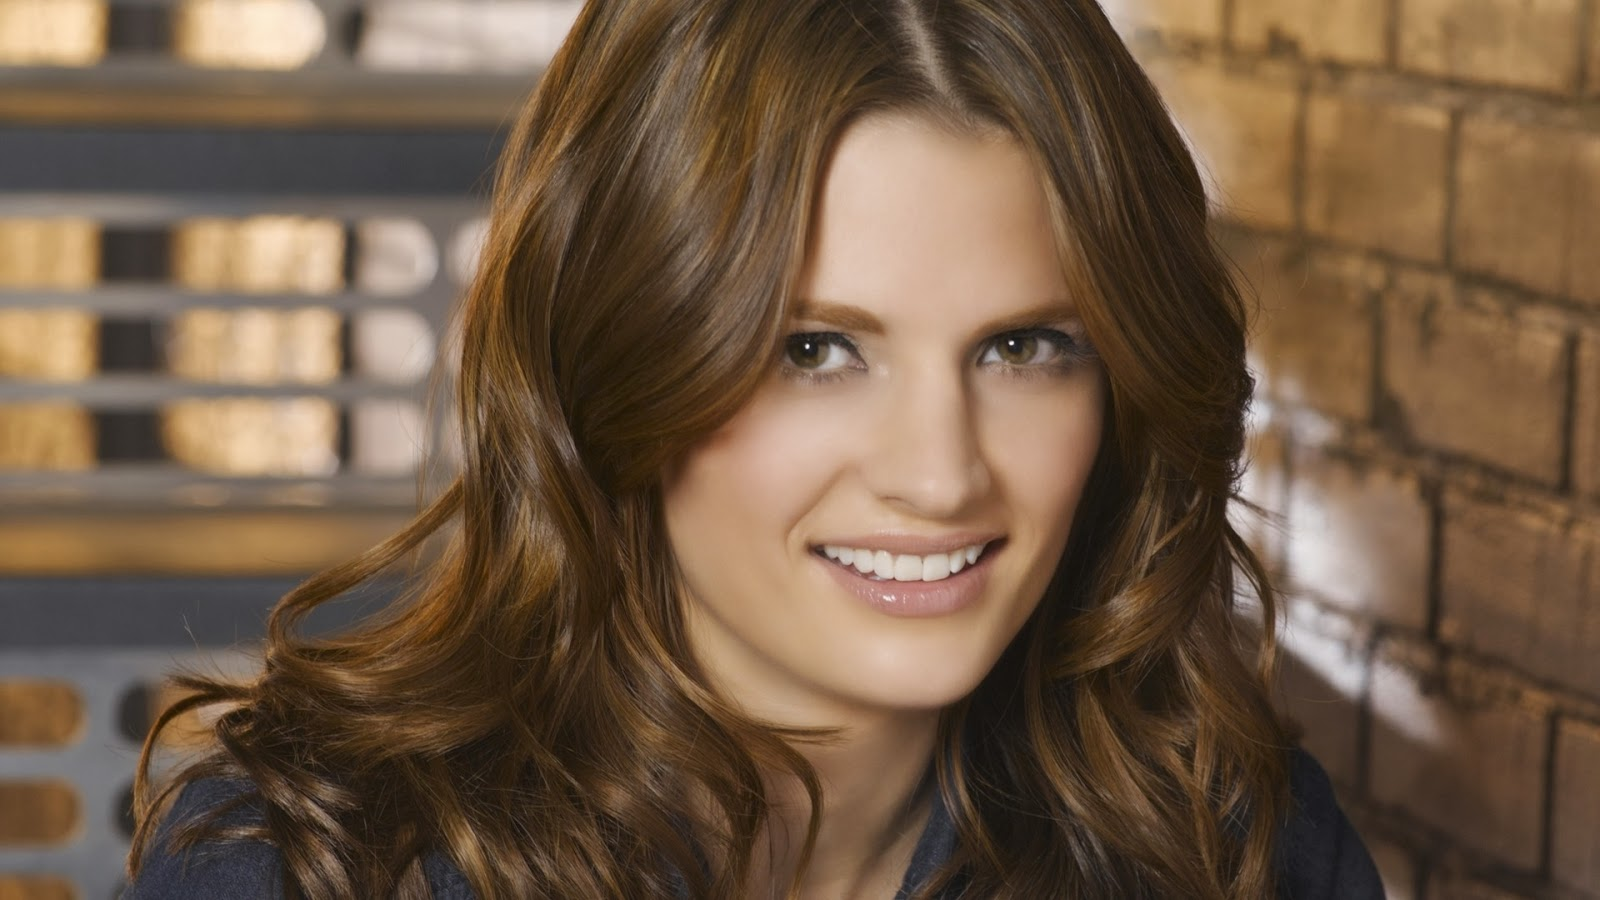 stana katic actress wallpaper - photo #11